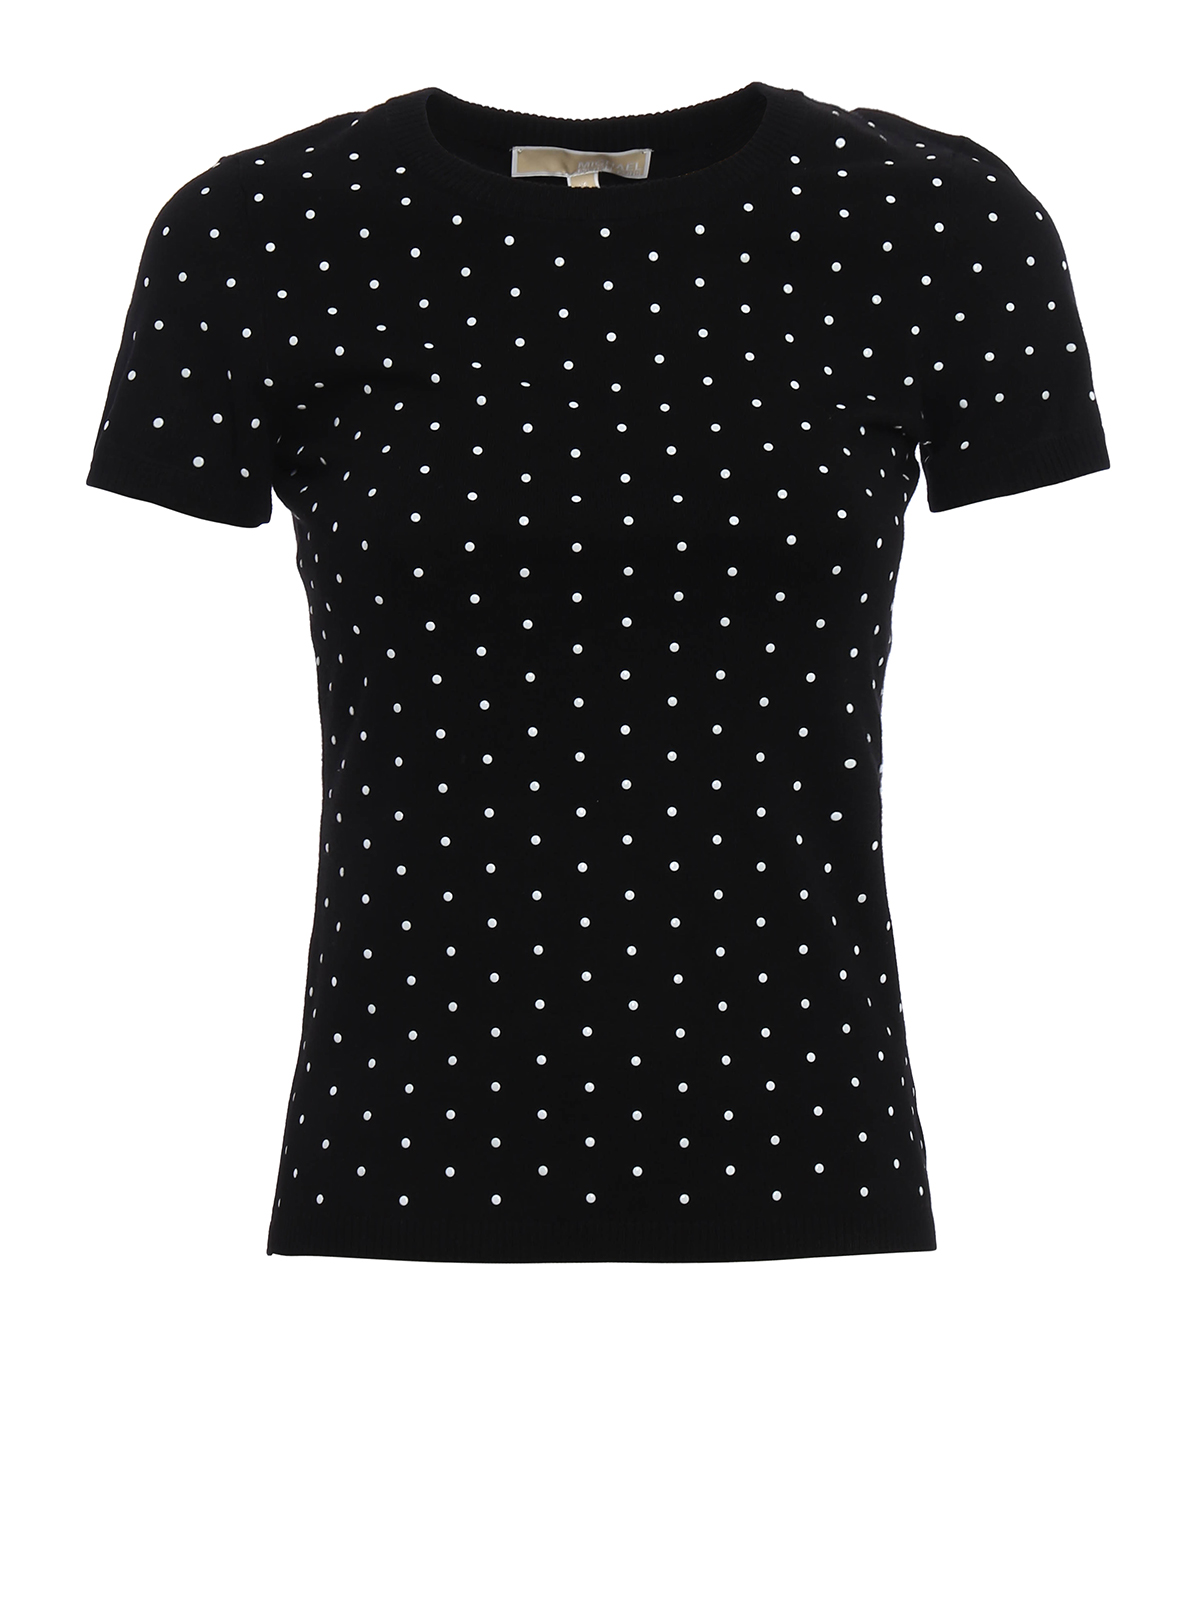 Find great deals on eBay for Mens Polka Dot T Shirt in T-Shirts and Men's Clothing. Shop with confidence.